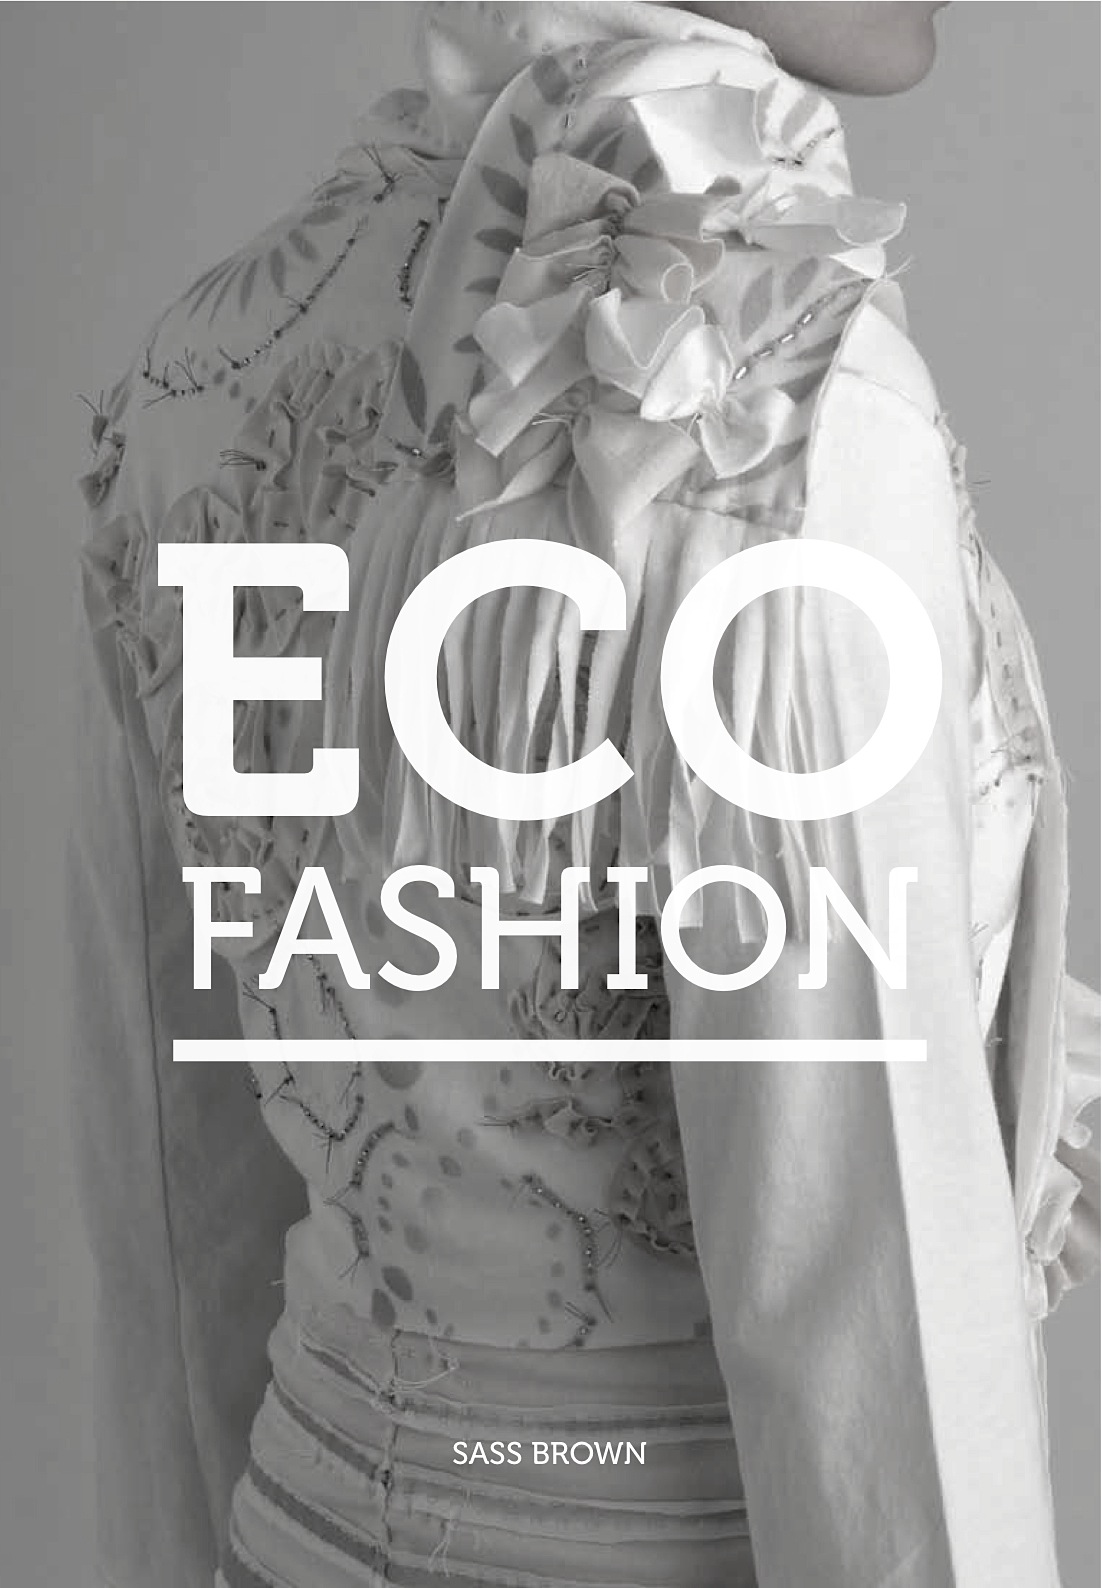 Fashion Book Cover Review : Geoffrey b small in eco fashion by sass brown